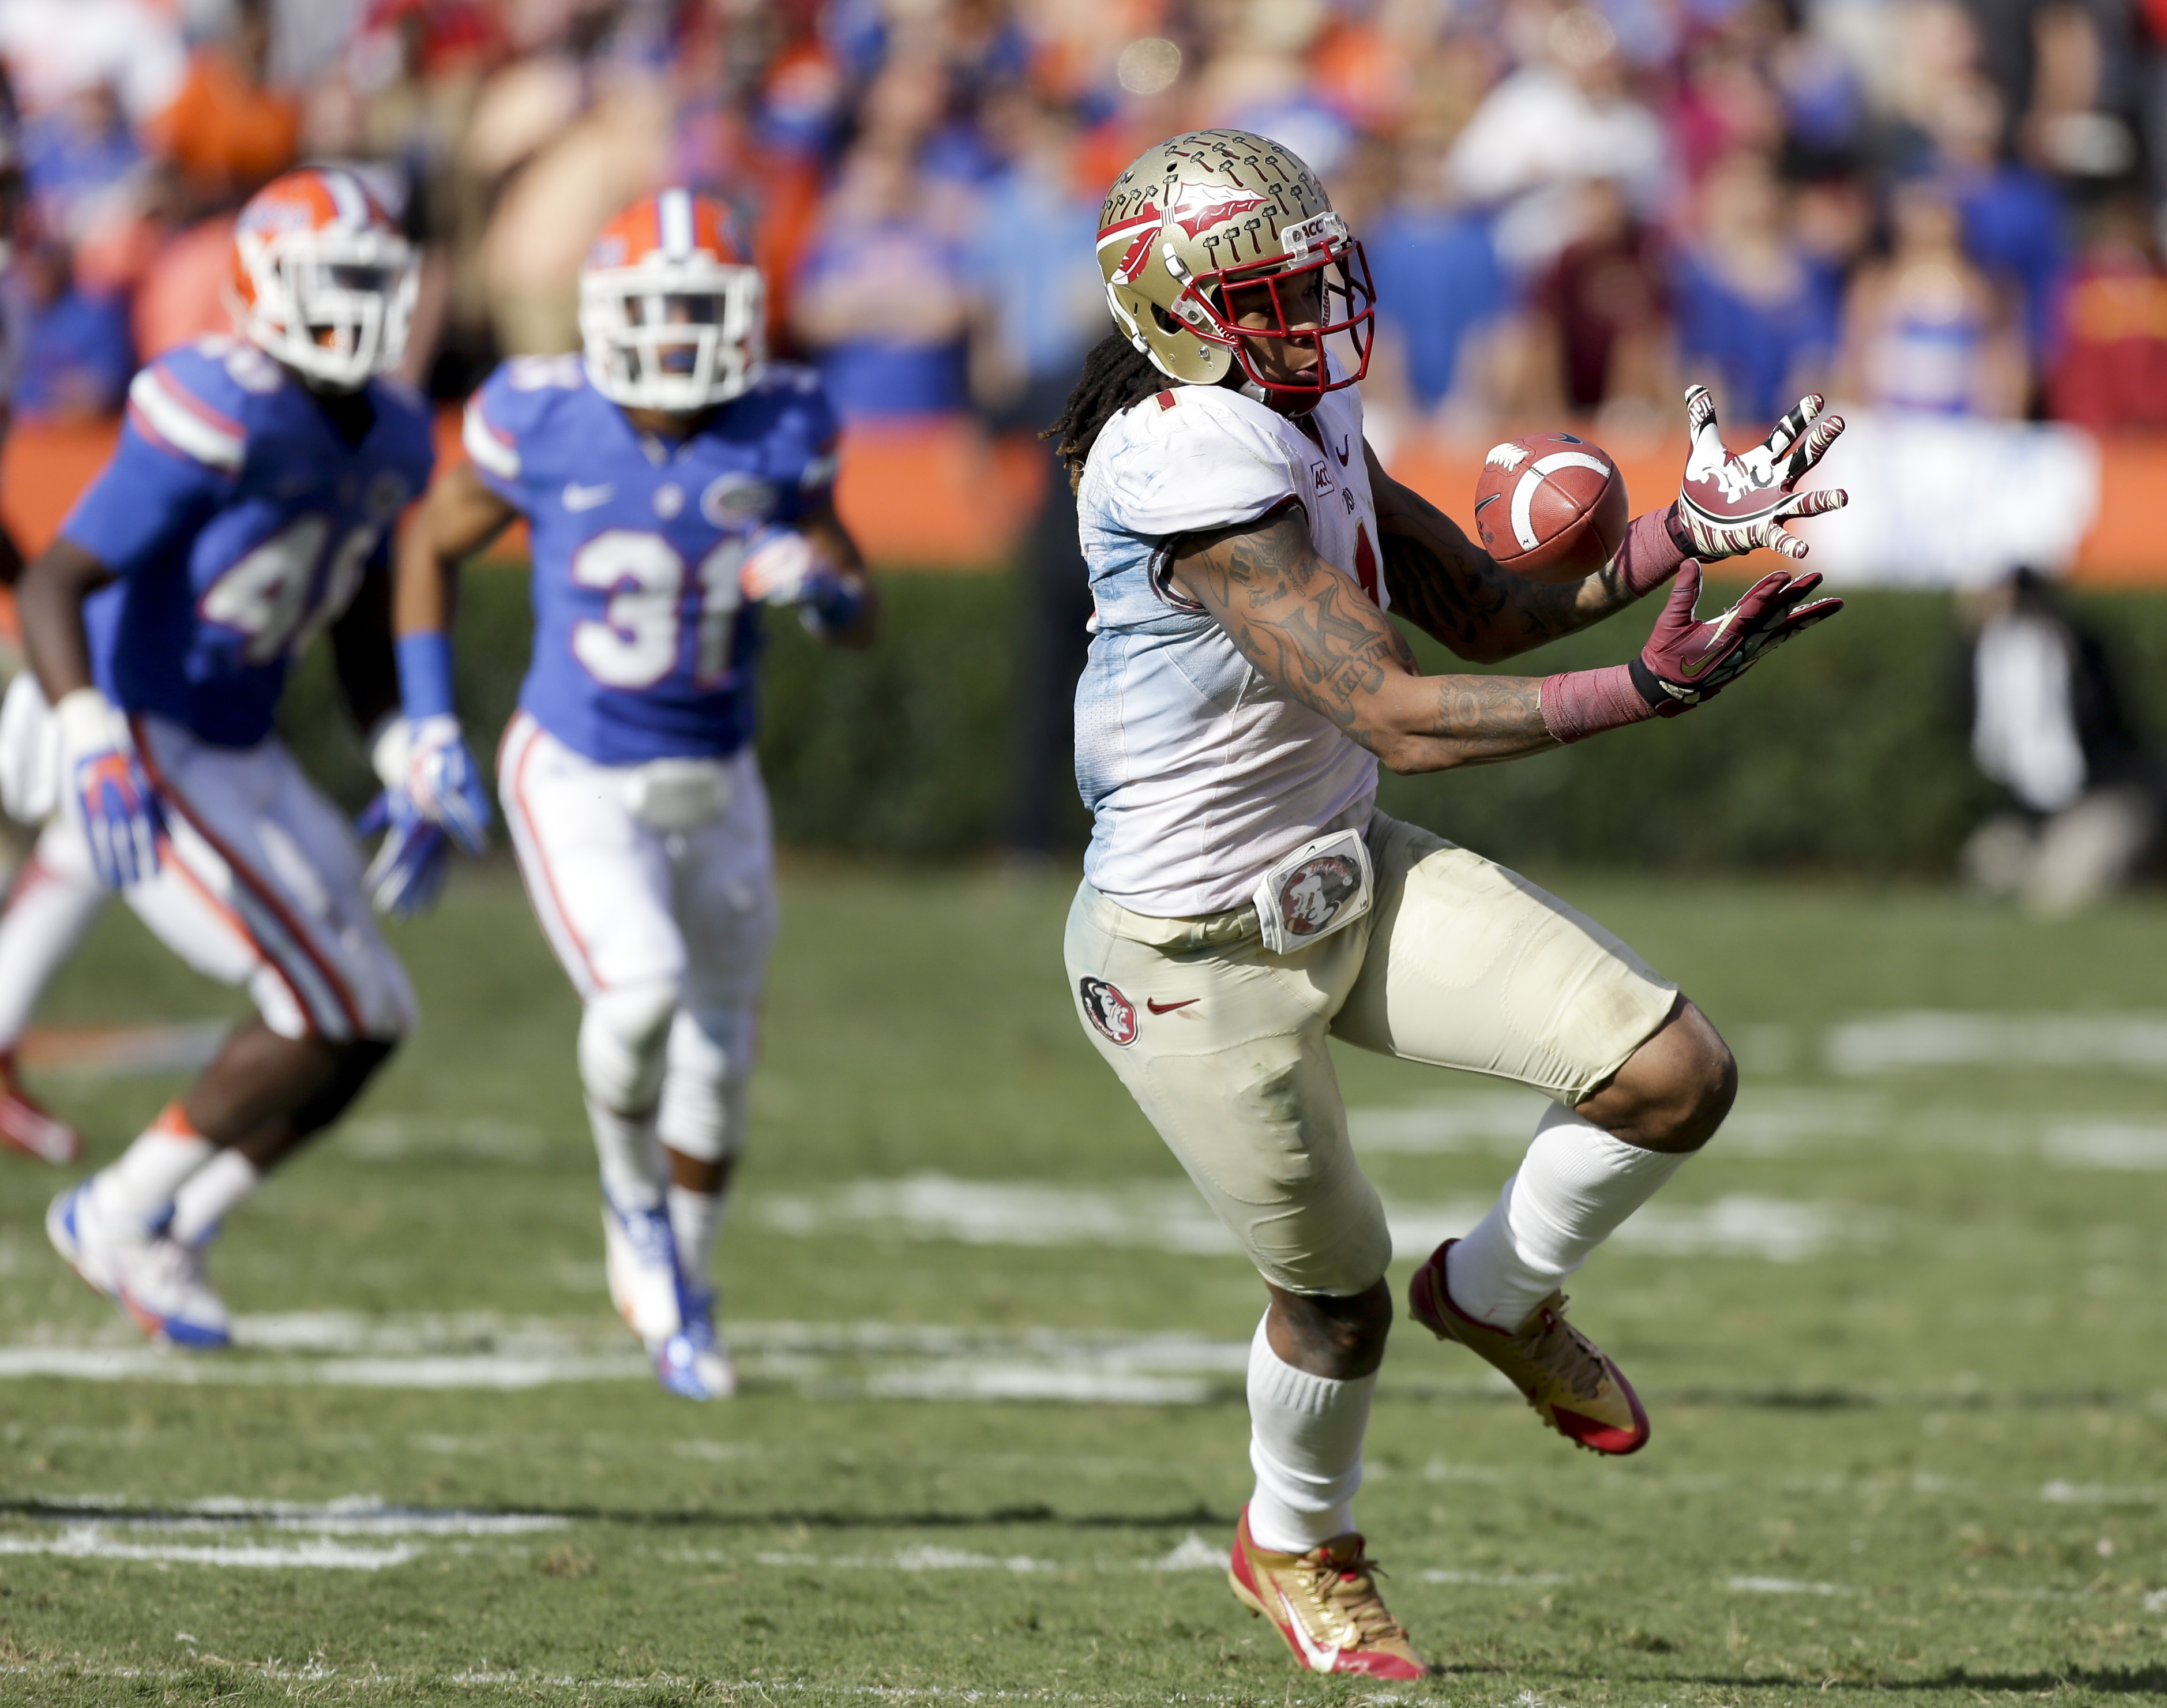 Florida State wide receiver Kelvin Benjamin tries but cannot hang on to a pass in front of Florida defenders William Few (48) and Cody Riggs (31) during the second half of an NCAA college football game in Gainesville, Fla., Saturday, Nov. 30, 2013. Florida State defeated Florida 37-7.(AP Photo/John Raoux)